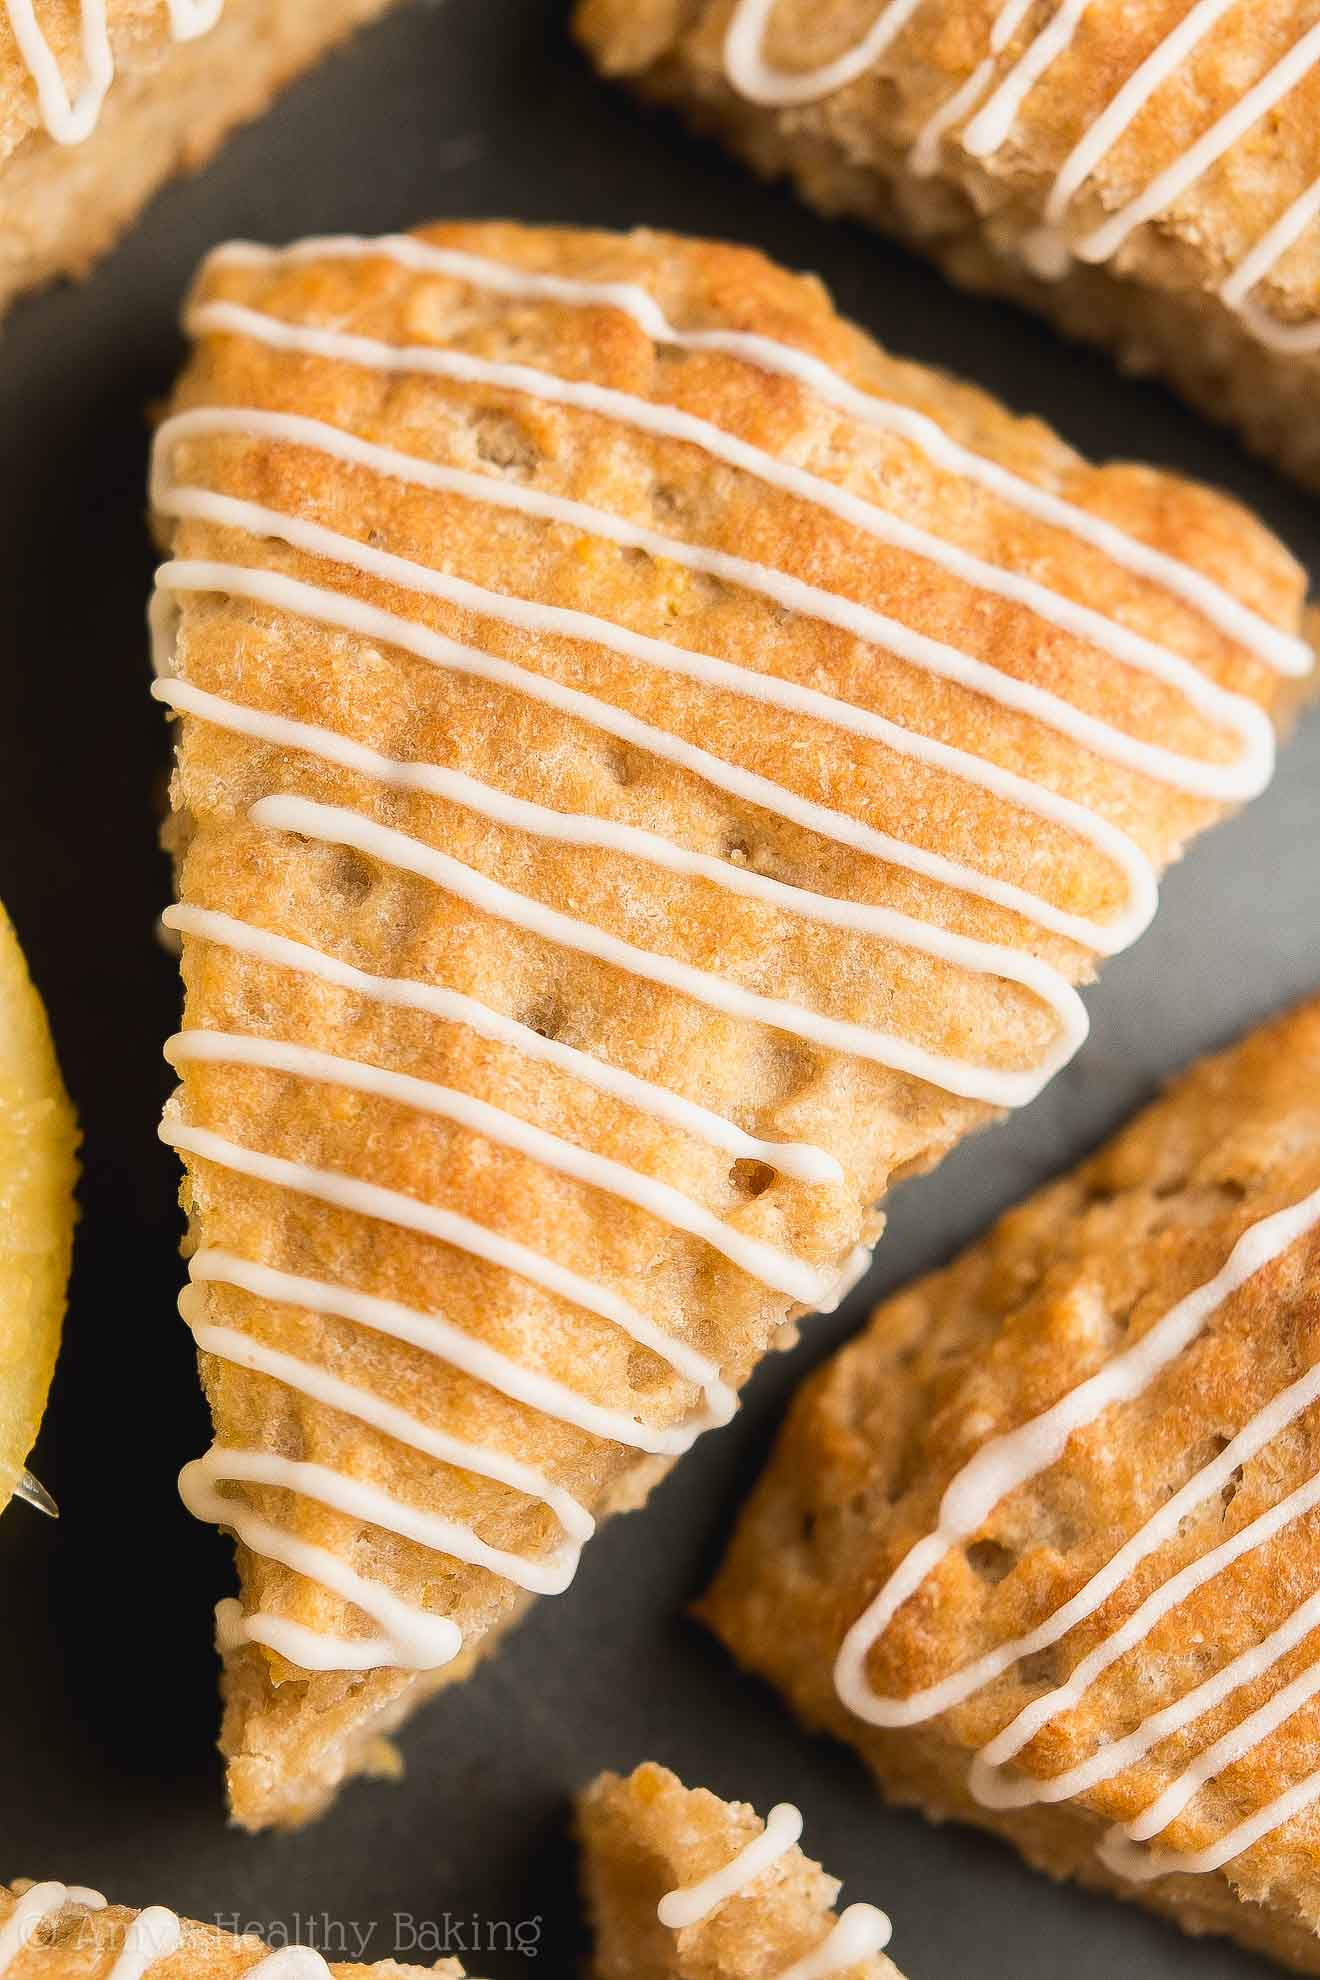 Gluten-Free Healthy Lemon Scones with Lemon Drizzle